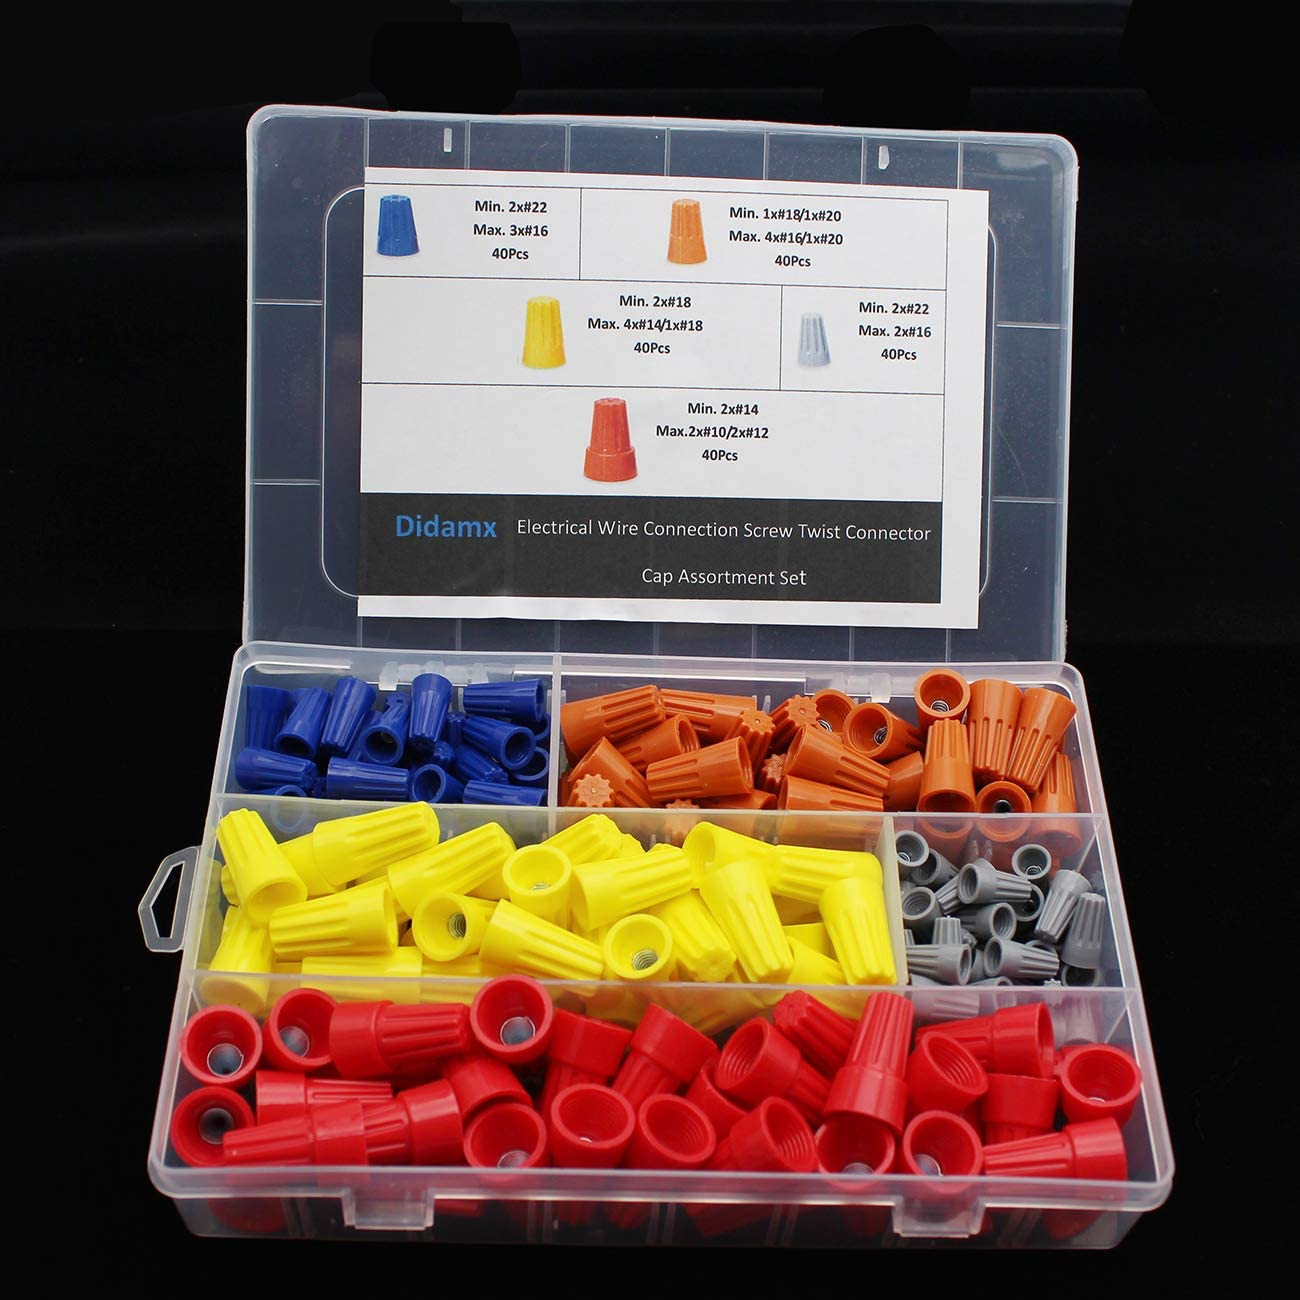 Didamx 200Pcs Electrical Wire Connectors Screw Terminals Spring Insert Twist Nuts Caps Connection Assortment Set